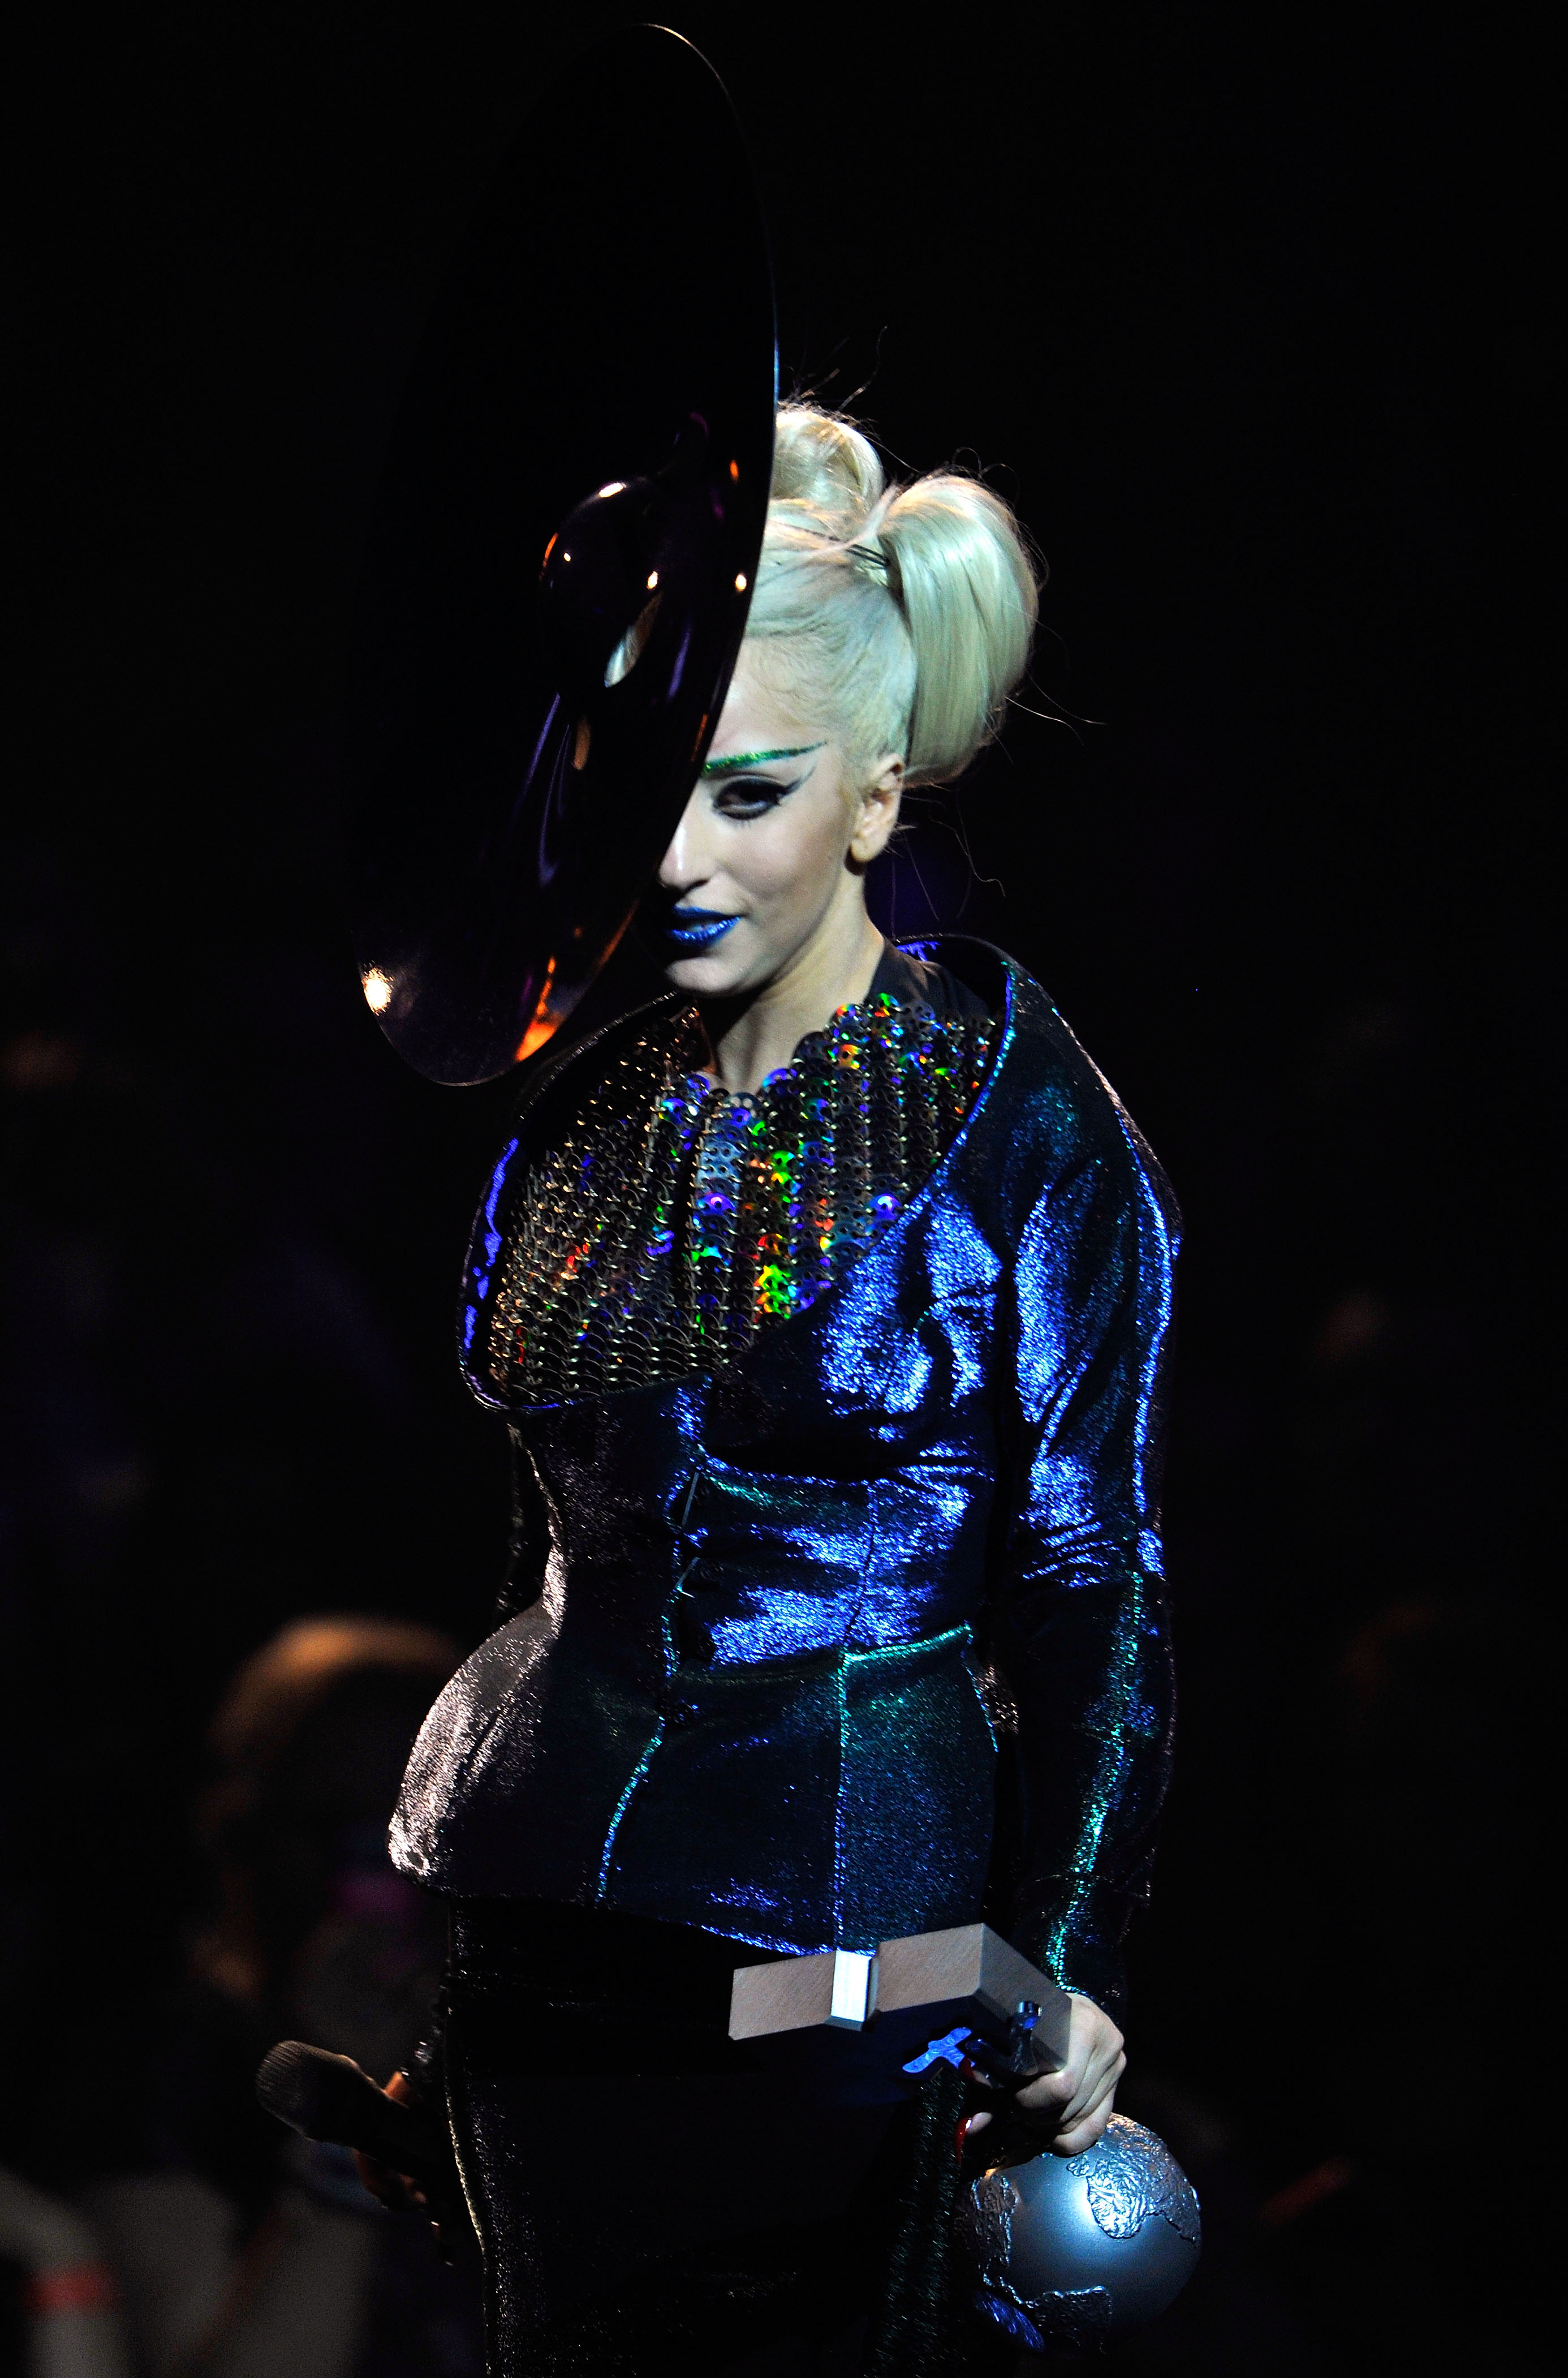 Singer Lady Gaga receives the Best Song award for 'Born This Way' during the MTV Europe Music Awards 2011 live show at at the Odyssey Arena on November 6, 2011, in Belfast, Northern Ireland. (Photo by Gareth Cattermole/Getty Images)